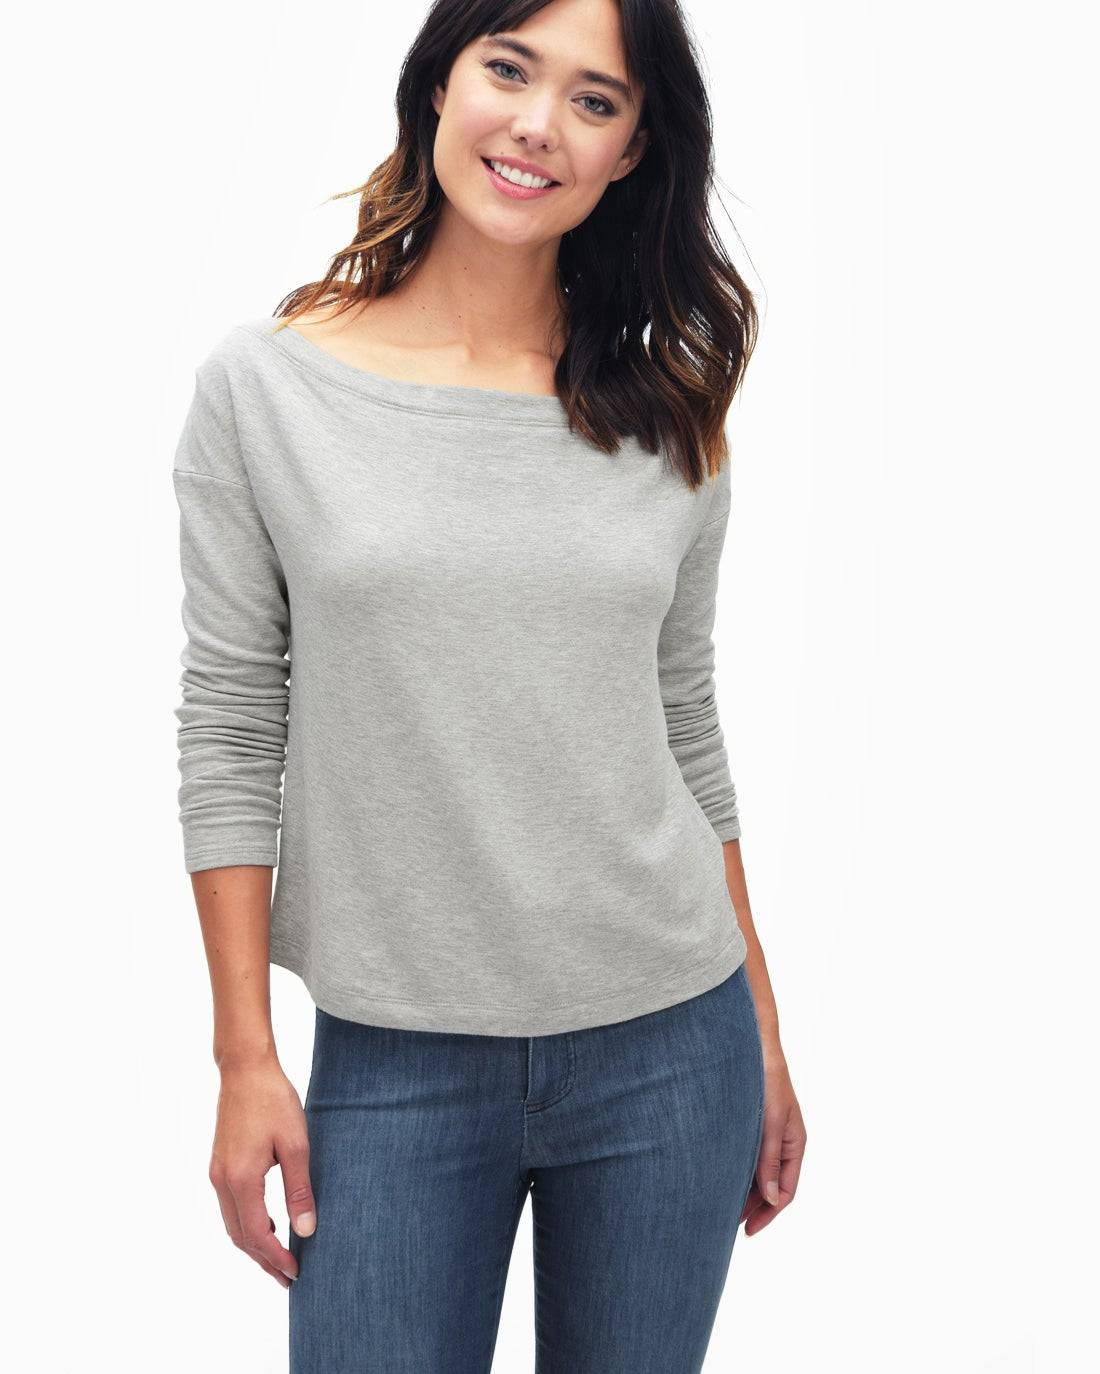 Splendid Supersoft Brushed French Terry Slouchy Boatneck Top  - Heather Grey - Female - Size: Extra Small